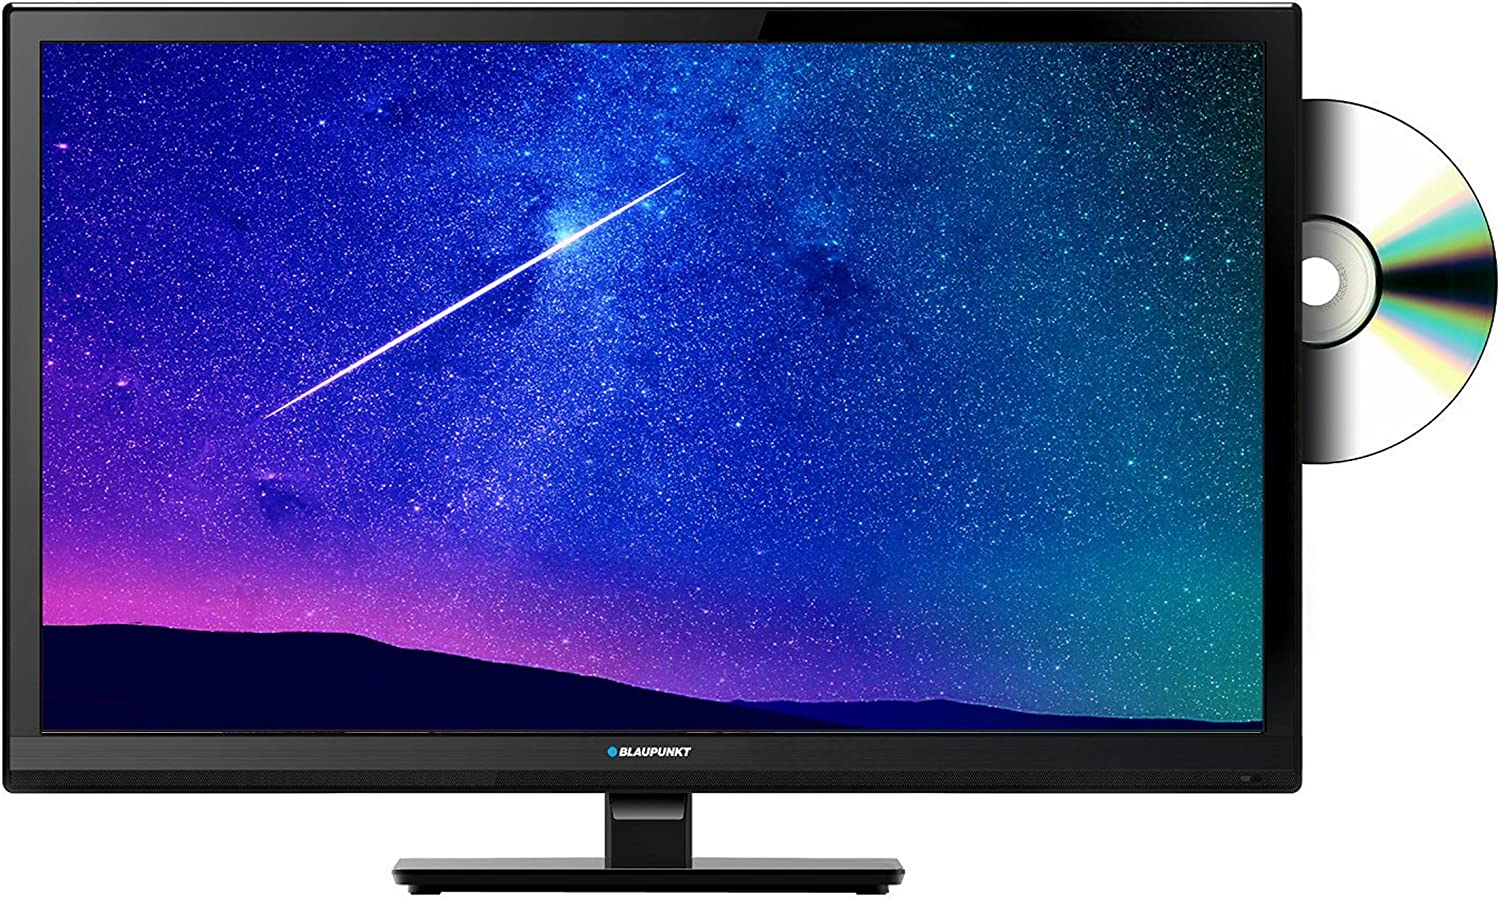 Blaupunkt 24-Inch Widescreen HD Ready LED TV with Built-in DVD Player and Freeview, [Importado de UK]: Amazon.es: Electrónica